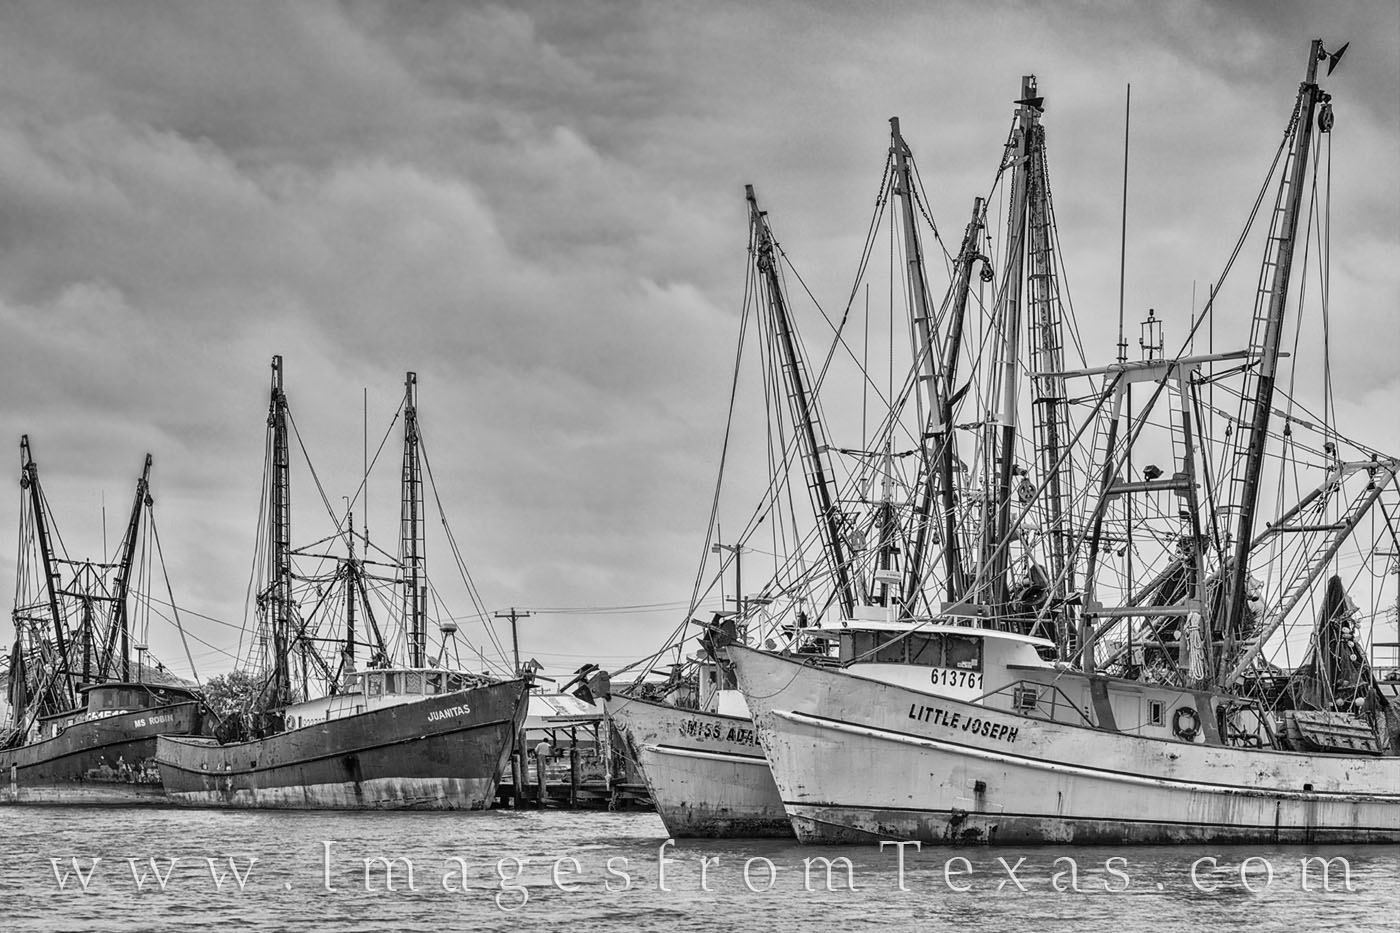 shimp boats, black and white, port isabel, south padre, texas coast, gulf of mexico, dock, harbor, photo